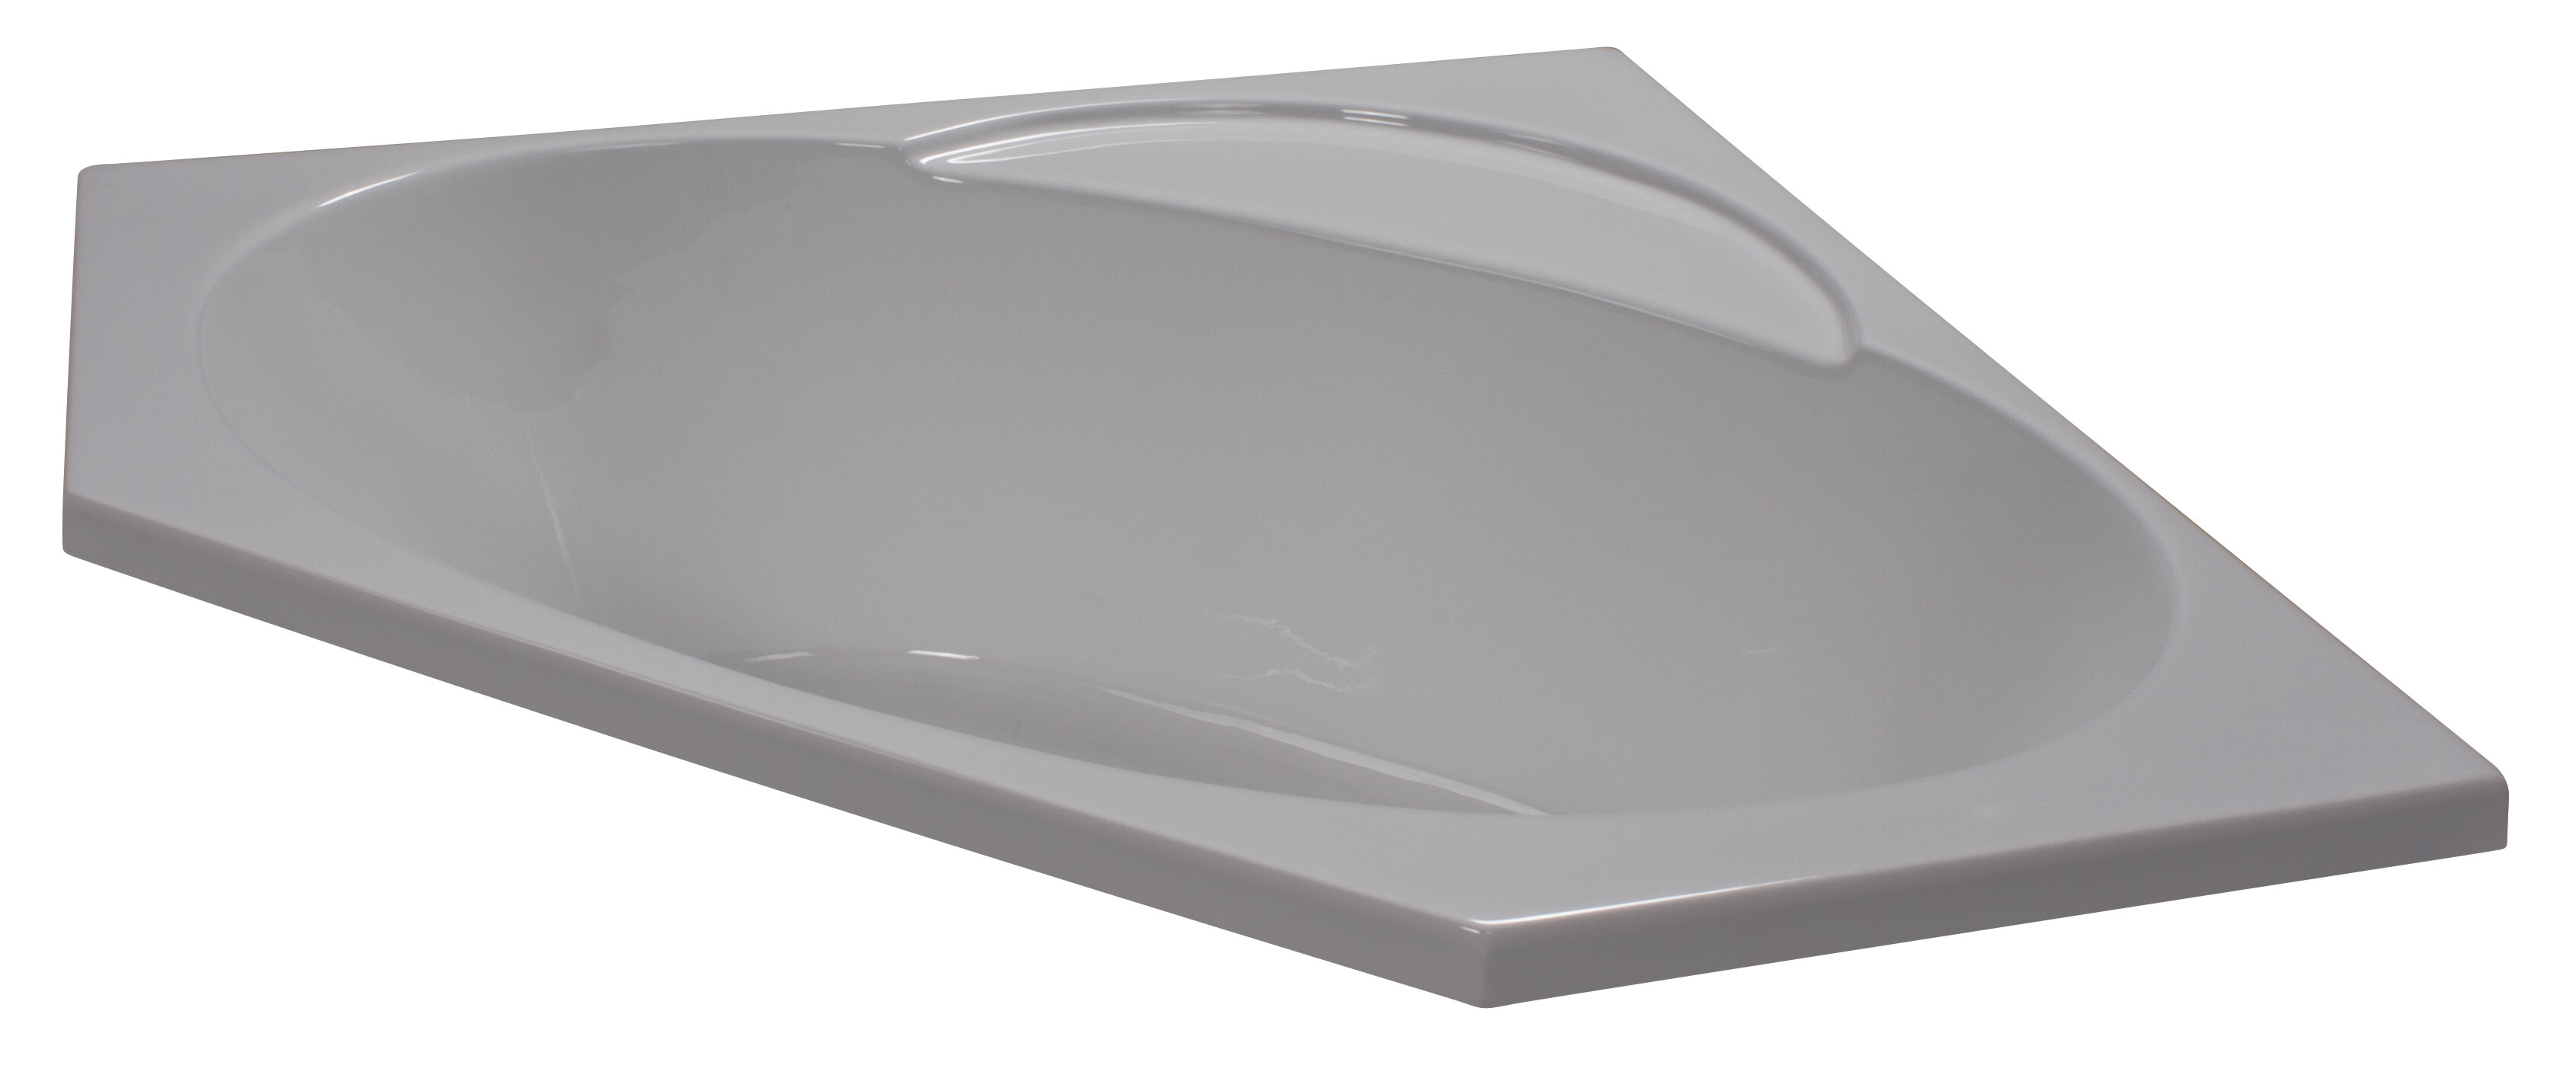 48 X 48 Soaker Corner Bathtub